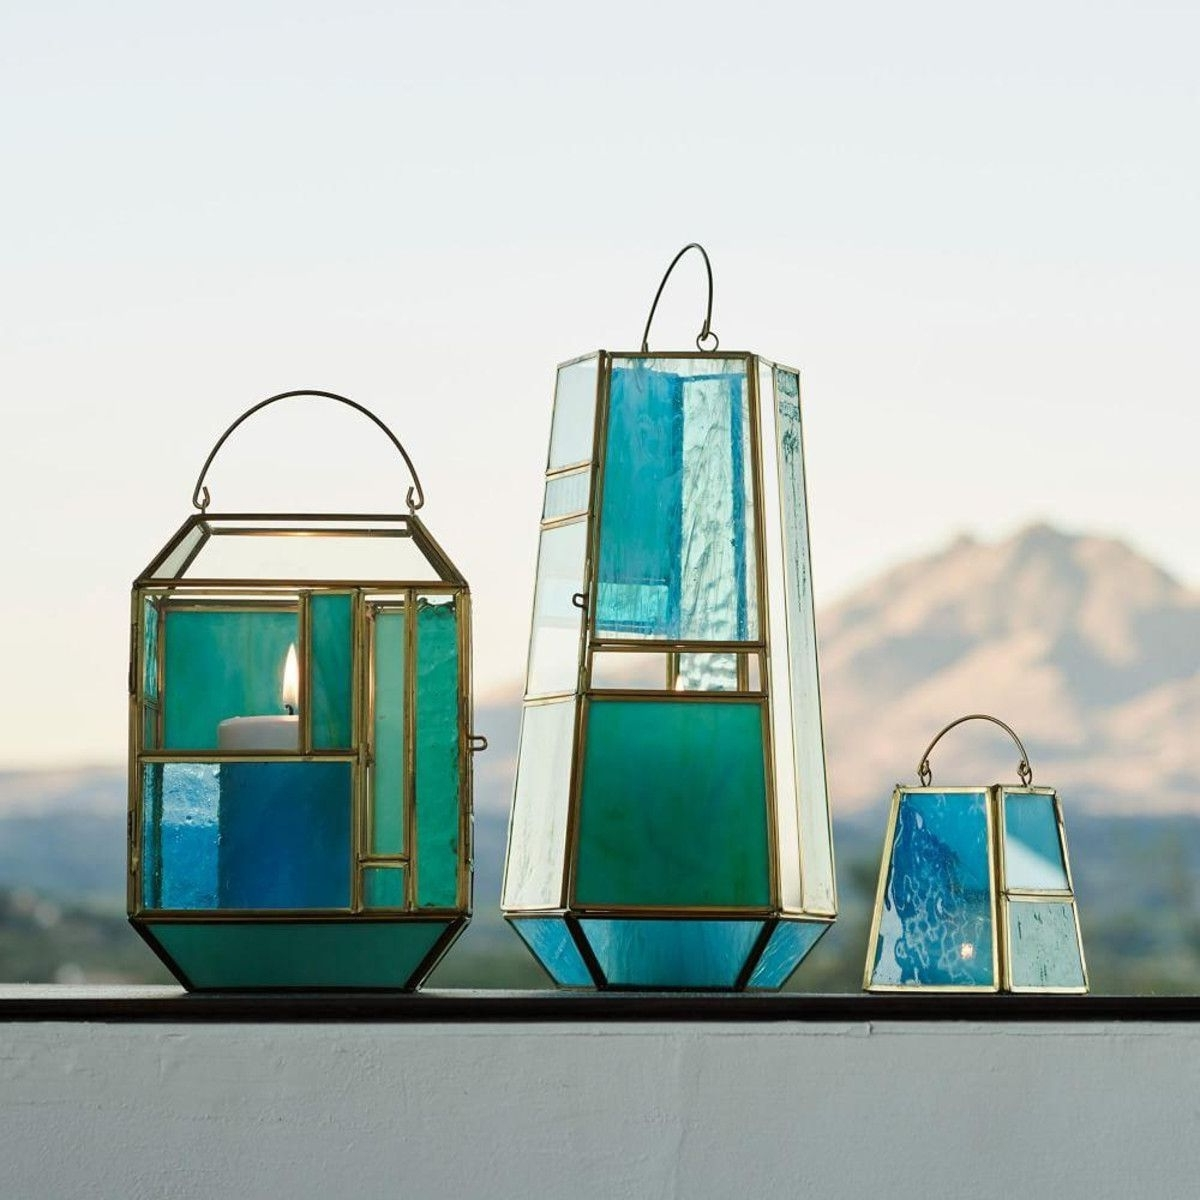 Blue Outdoor Lanterns With Favorite Hang These Stained Glass Inspired Lanterns Inside Or Outside, To (View 1 of 20)